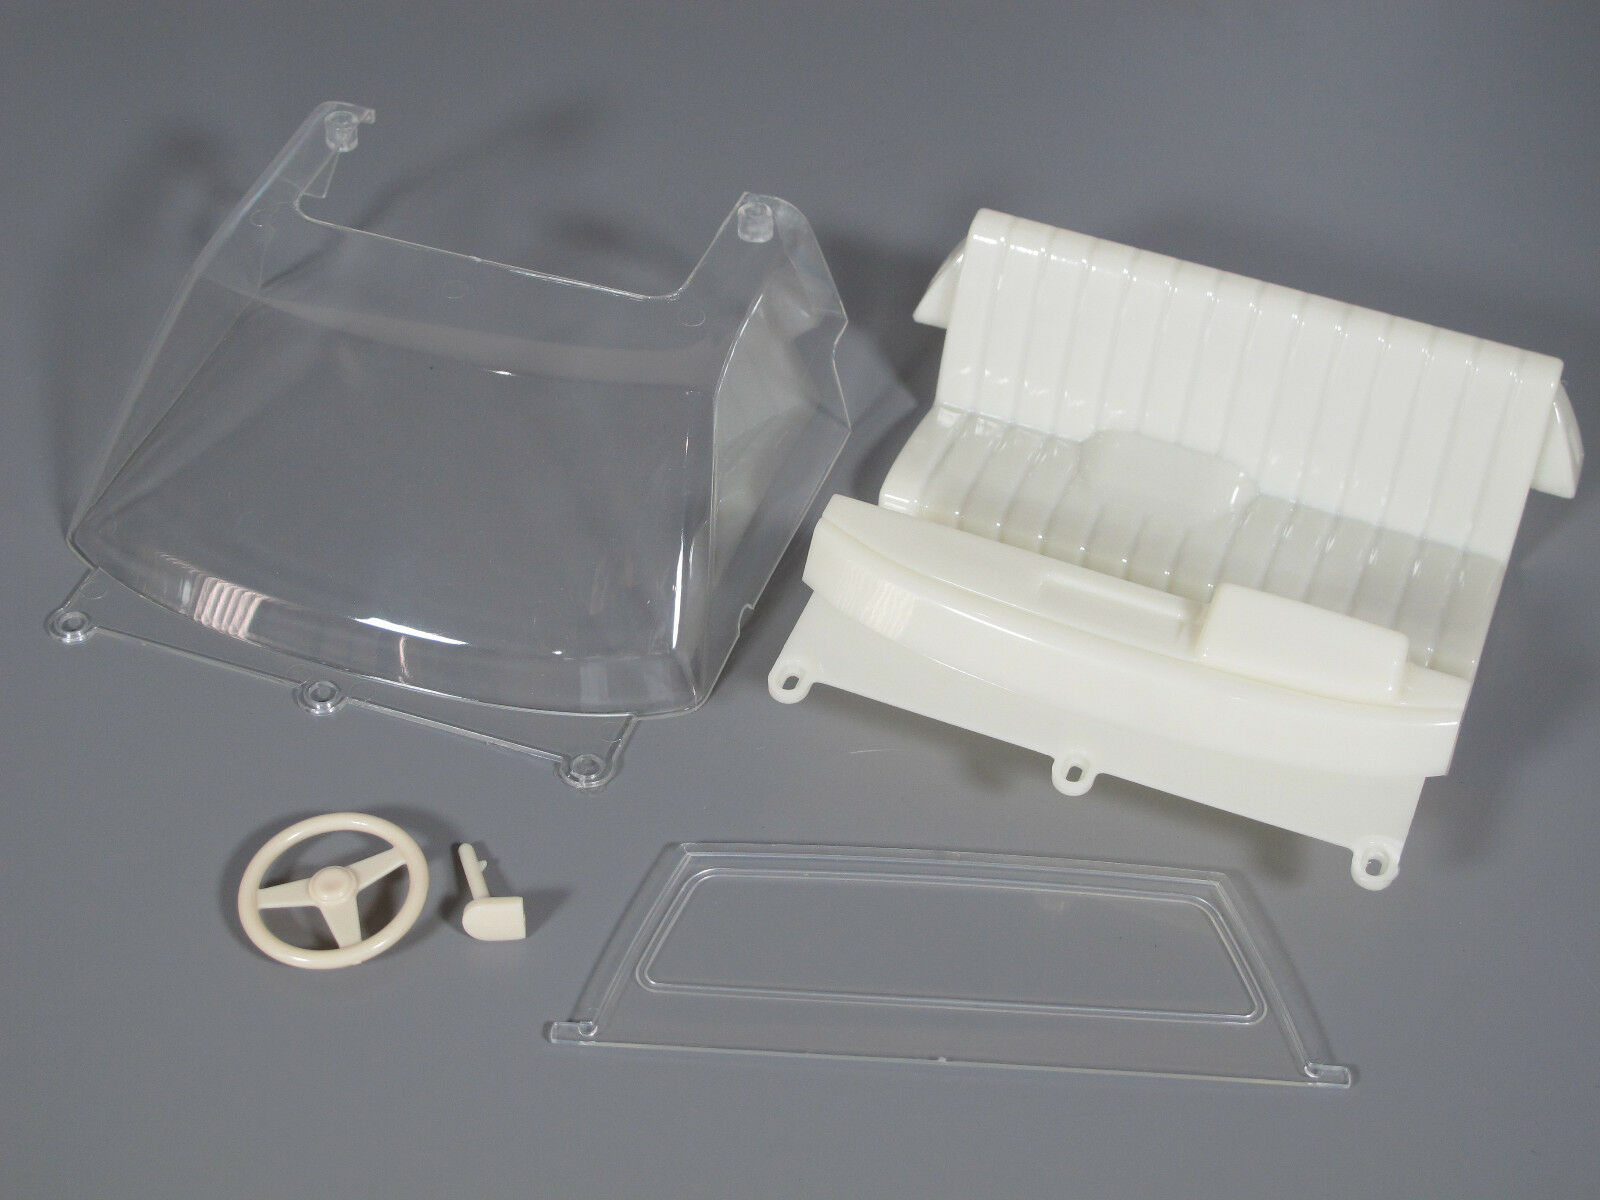 Tamiya 1 10 RC Toyota Toyota Toyota Hilux Bruiser Seat Steering Wheel Clear Window Windshield c01edf